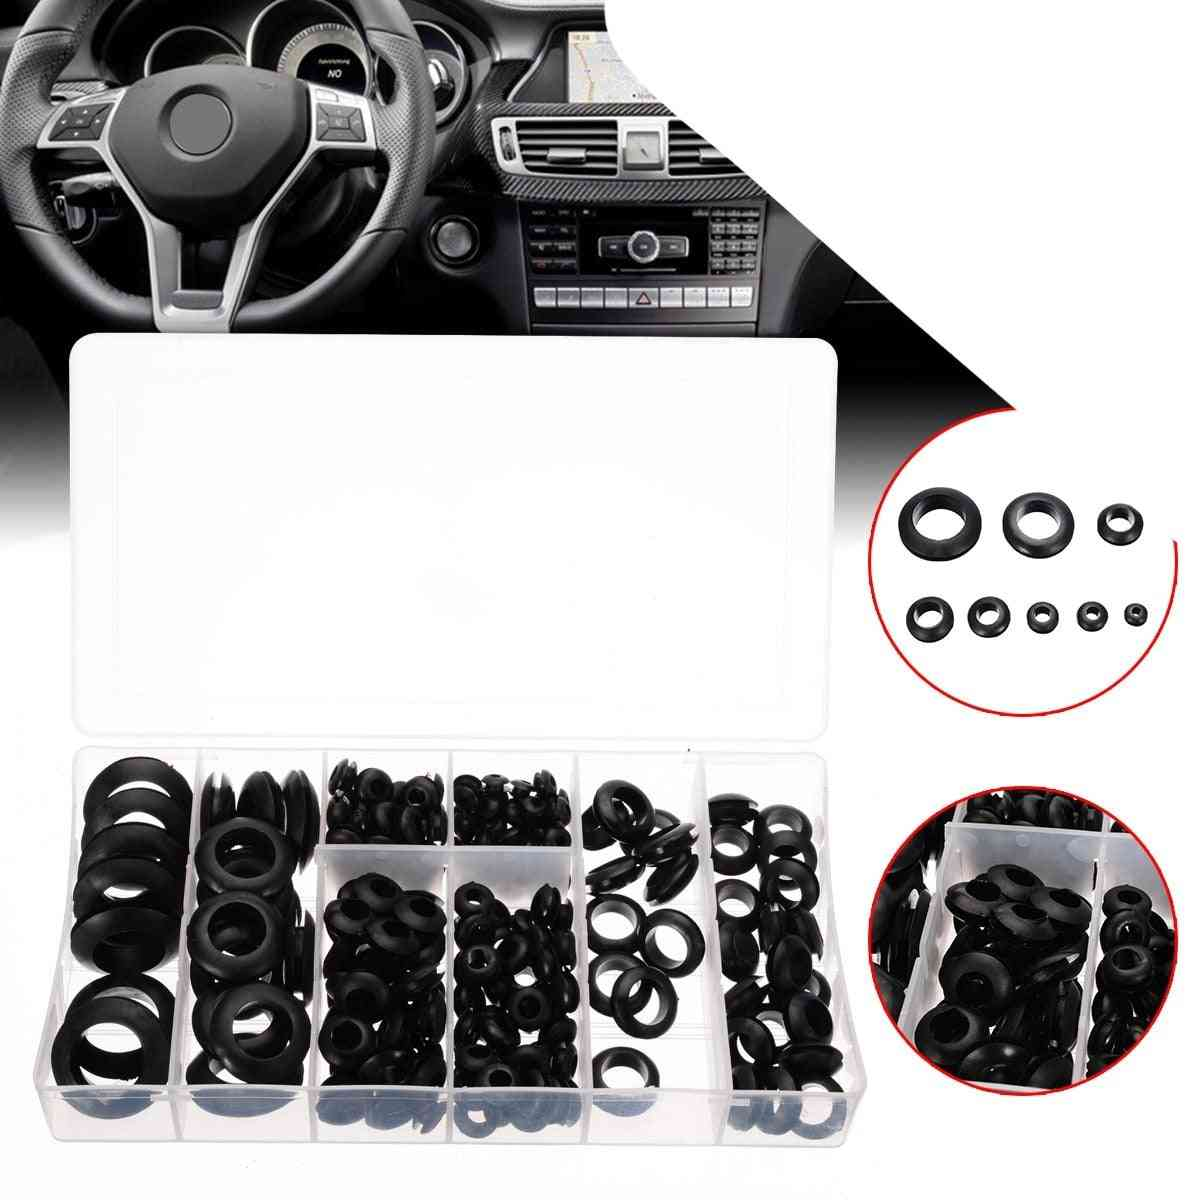 Rubber Grommet Assortment Set - Electrical Wire Gasket Kit